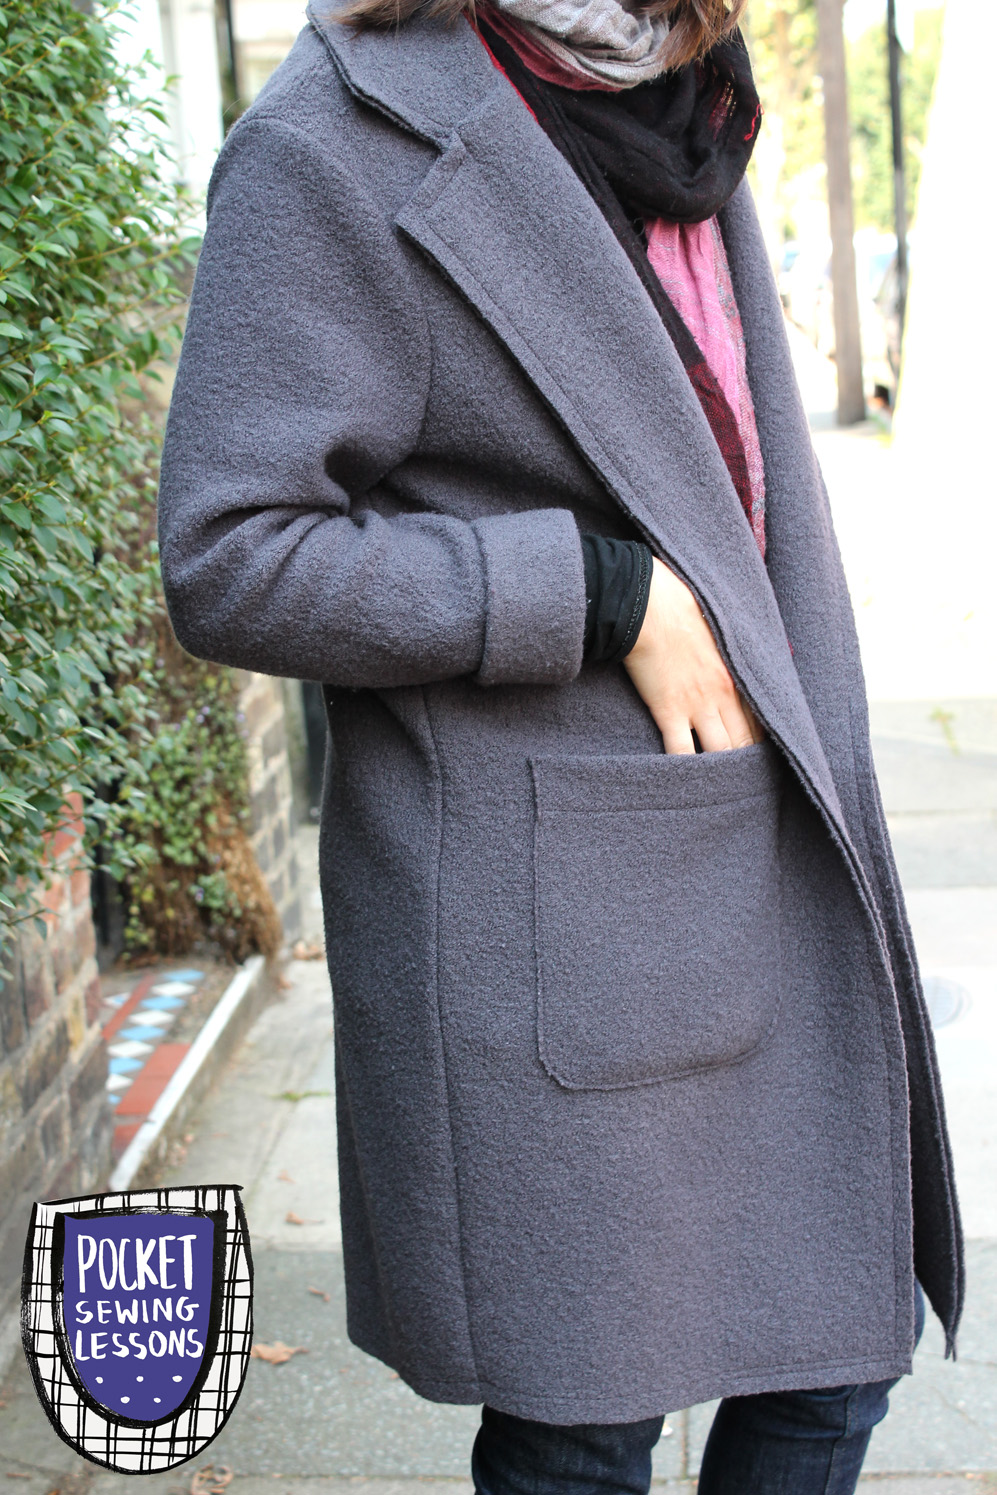 Pocket Sewing Lessons : Sewing Project: Boiled Wool Coat